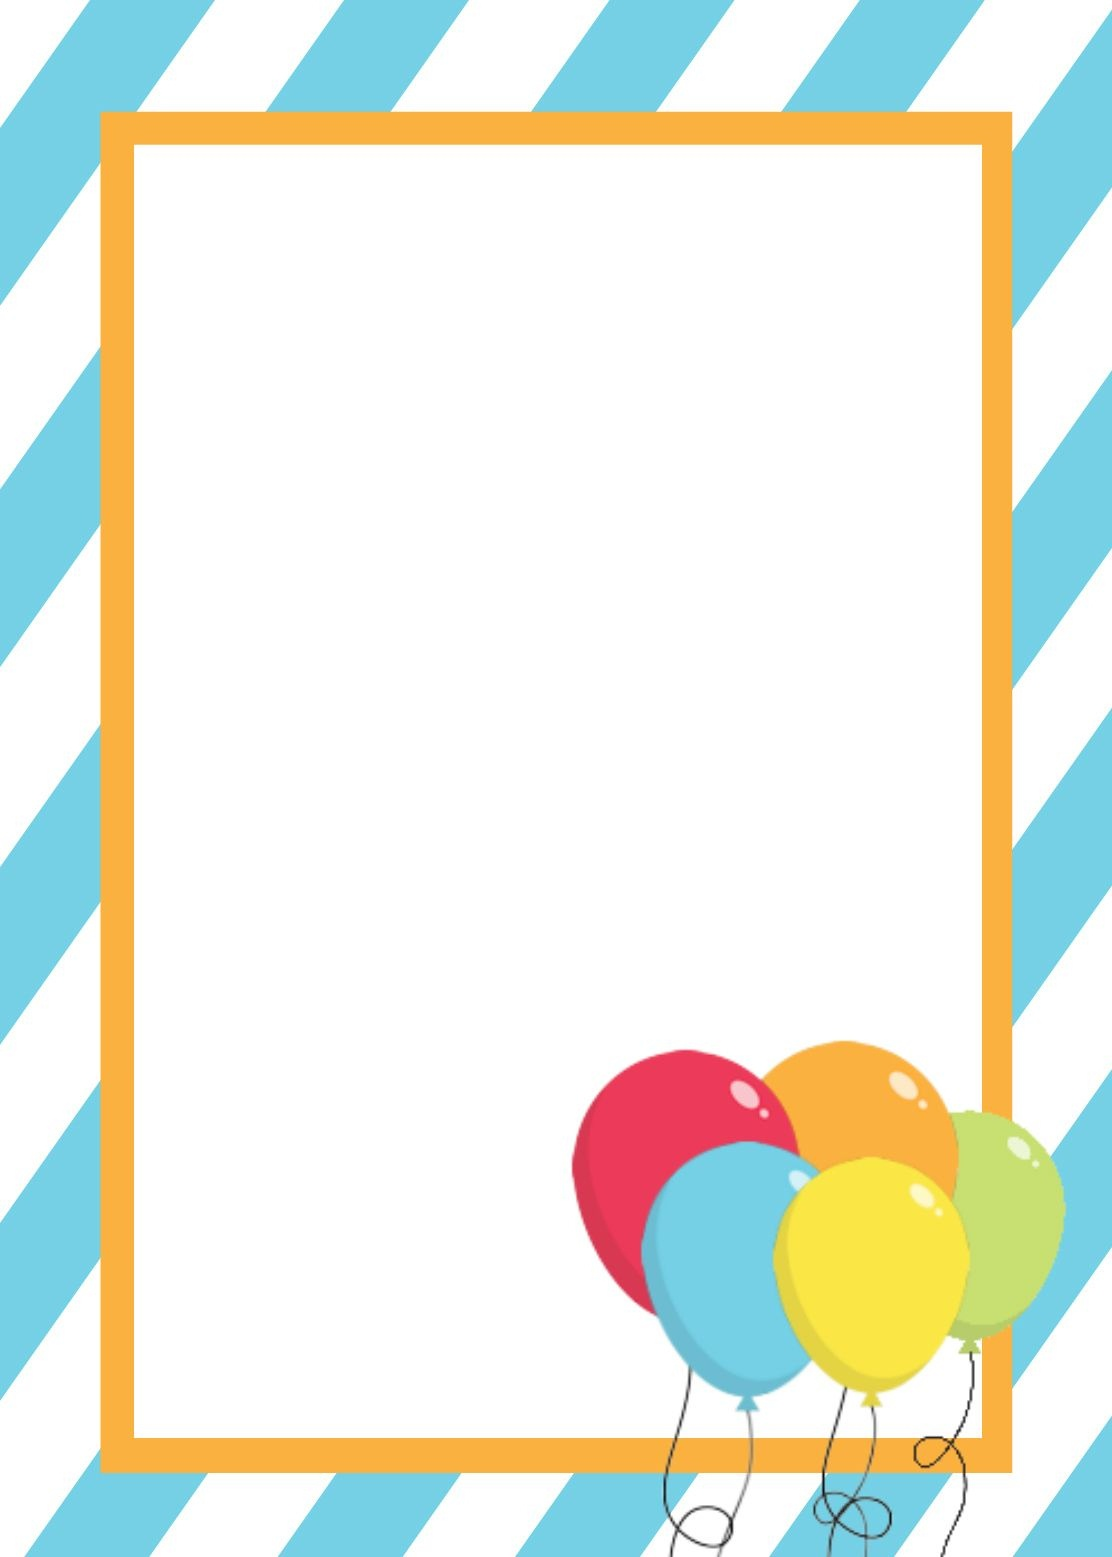 Free Printable Birthday Invitation Templates | Birthday Ideas And - Free Printable Birthday Invitation Templates